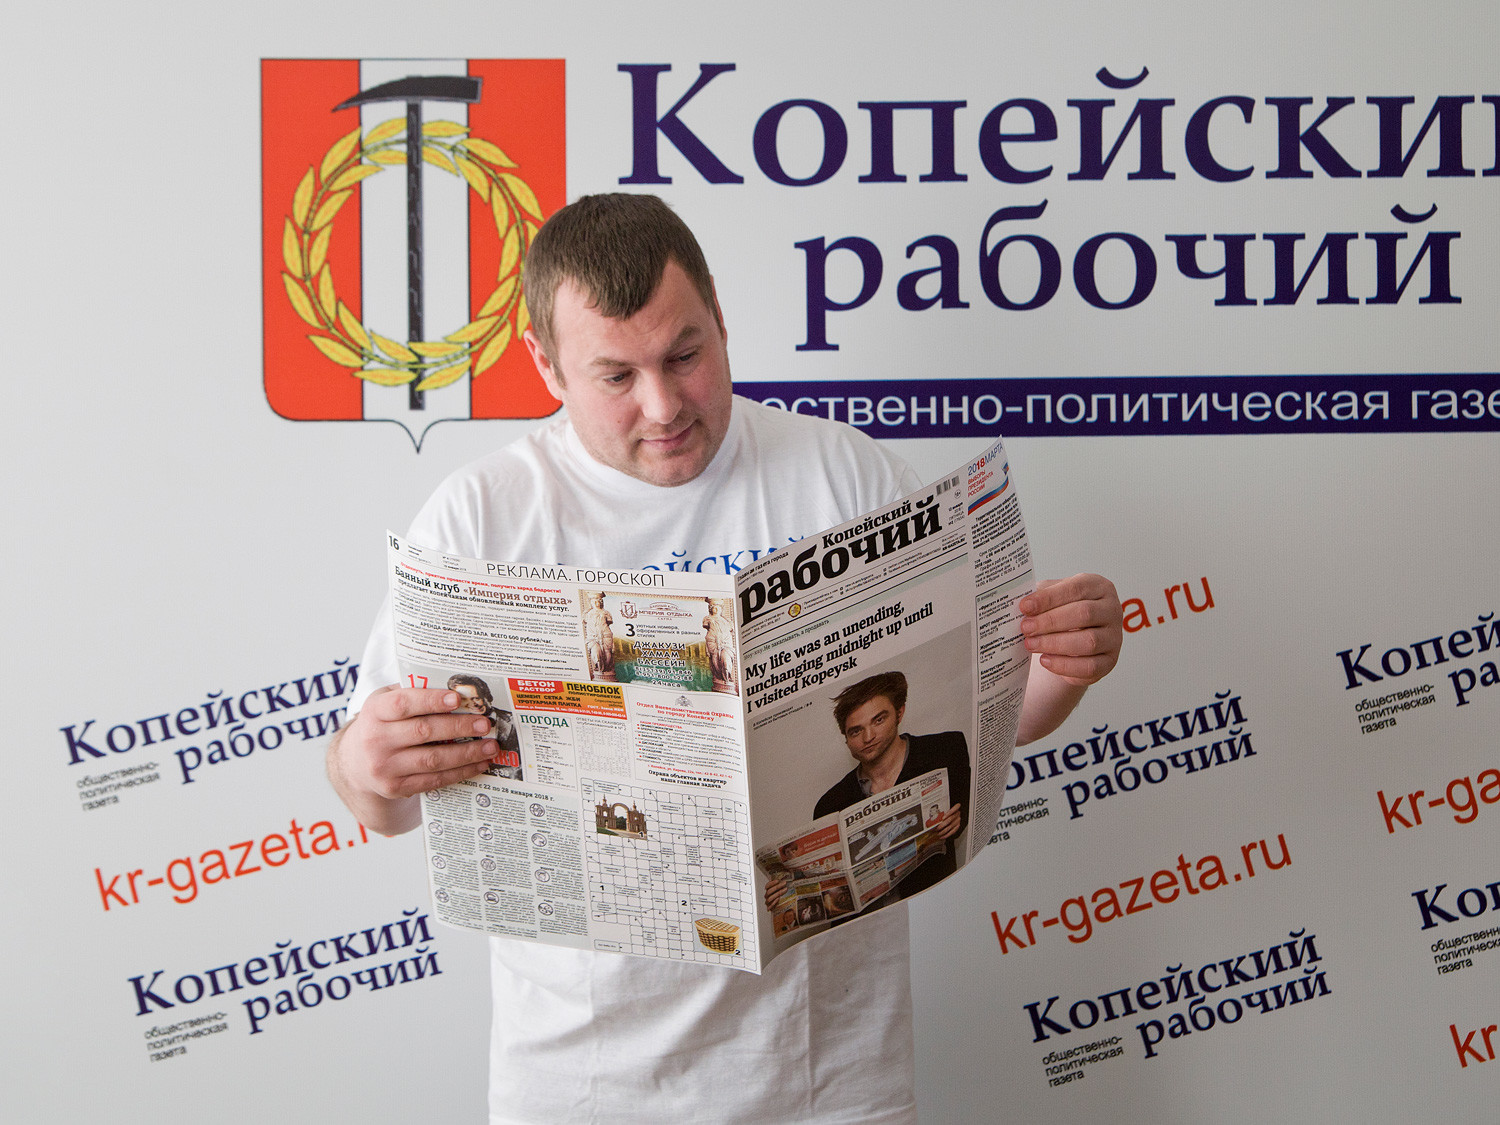 Sergey Shevkunenko: biography and role of the actor 3